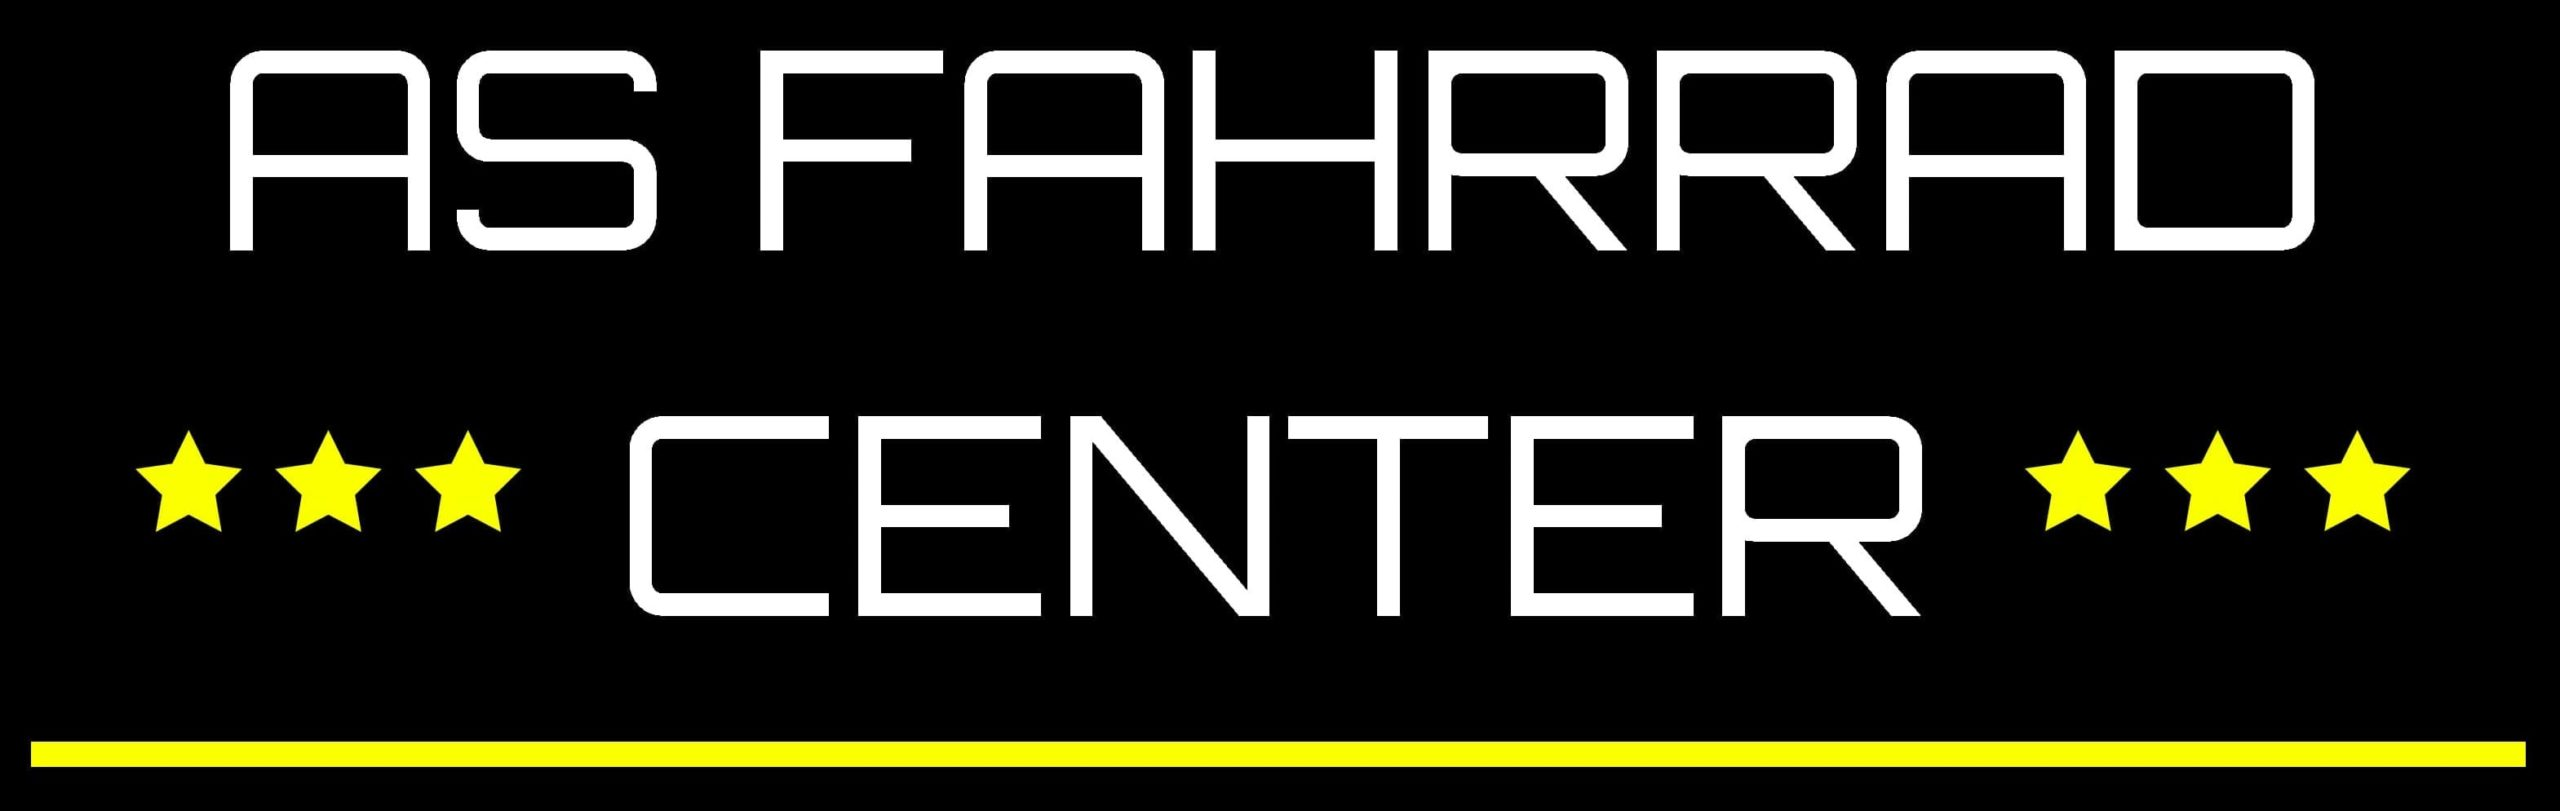 AS Fahrradcenter